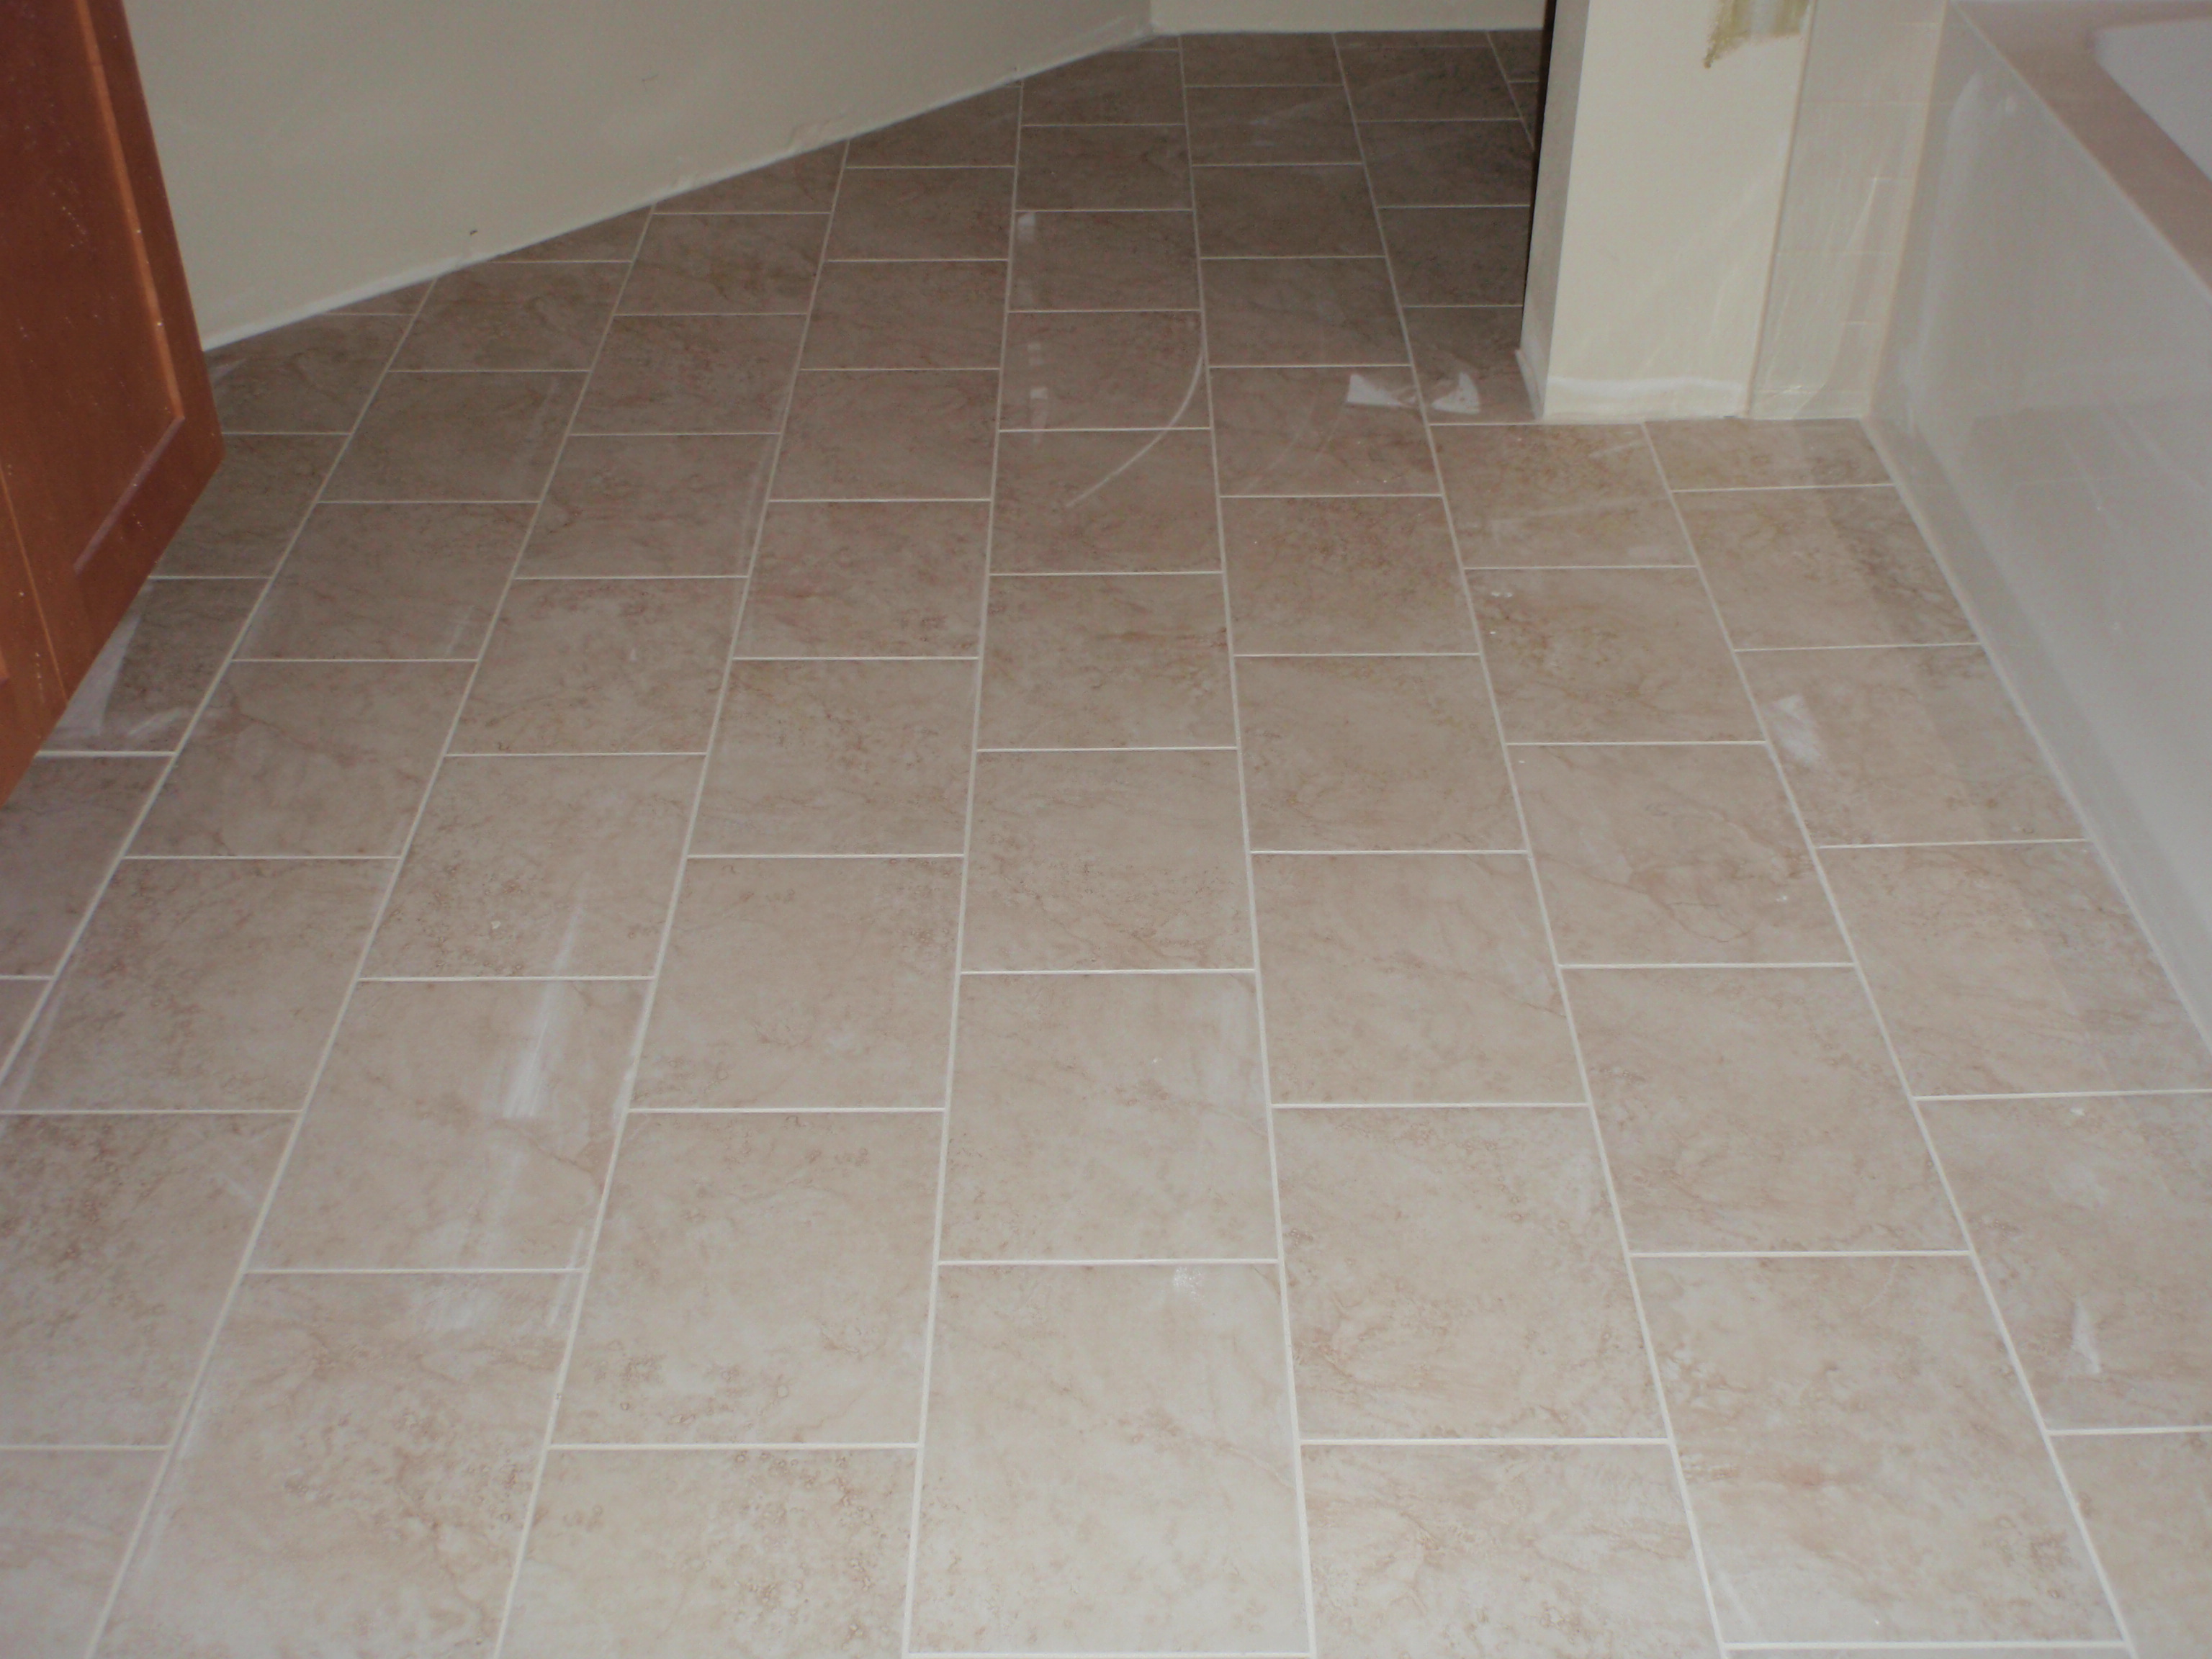 ... How To Tile Bathroom Floor